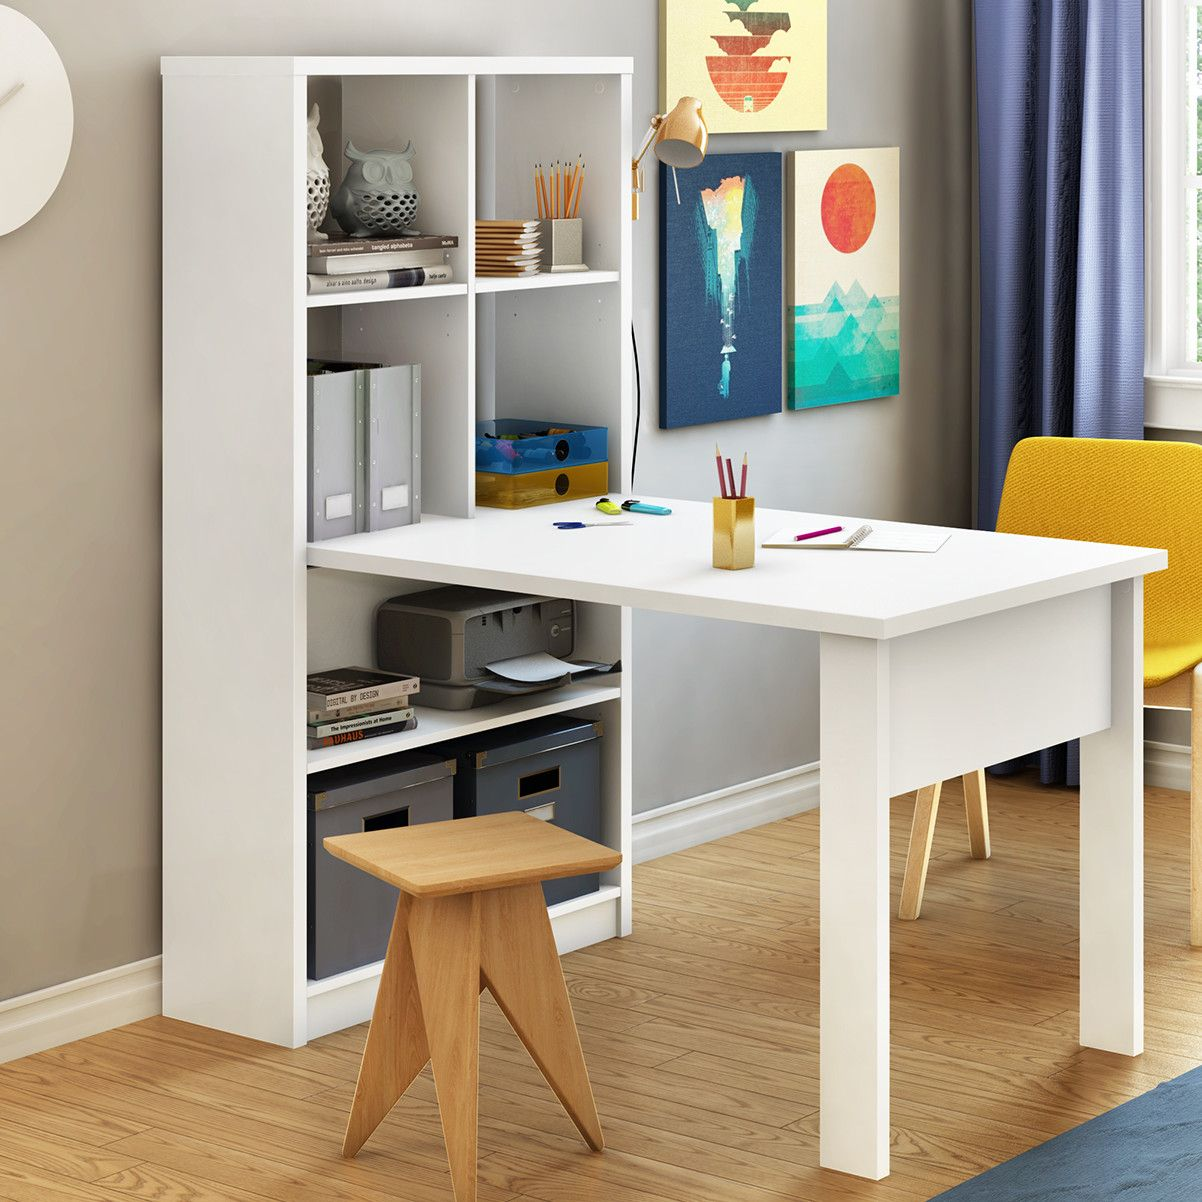 South Shore Annexe Drafting Table Reviews Wayfair Craft Tables With Storage Craft Table Desk Storage